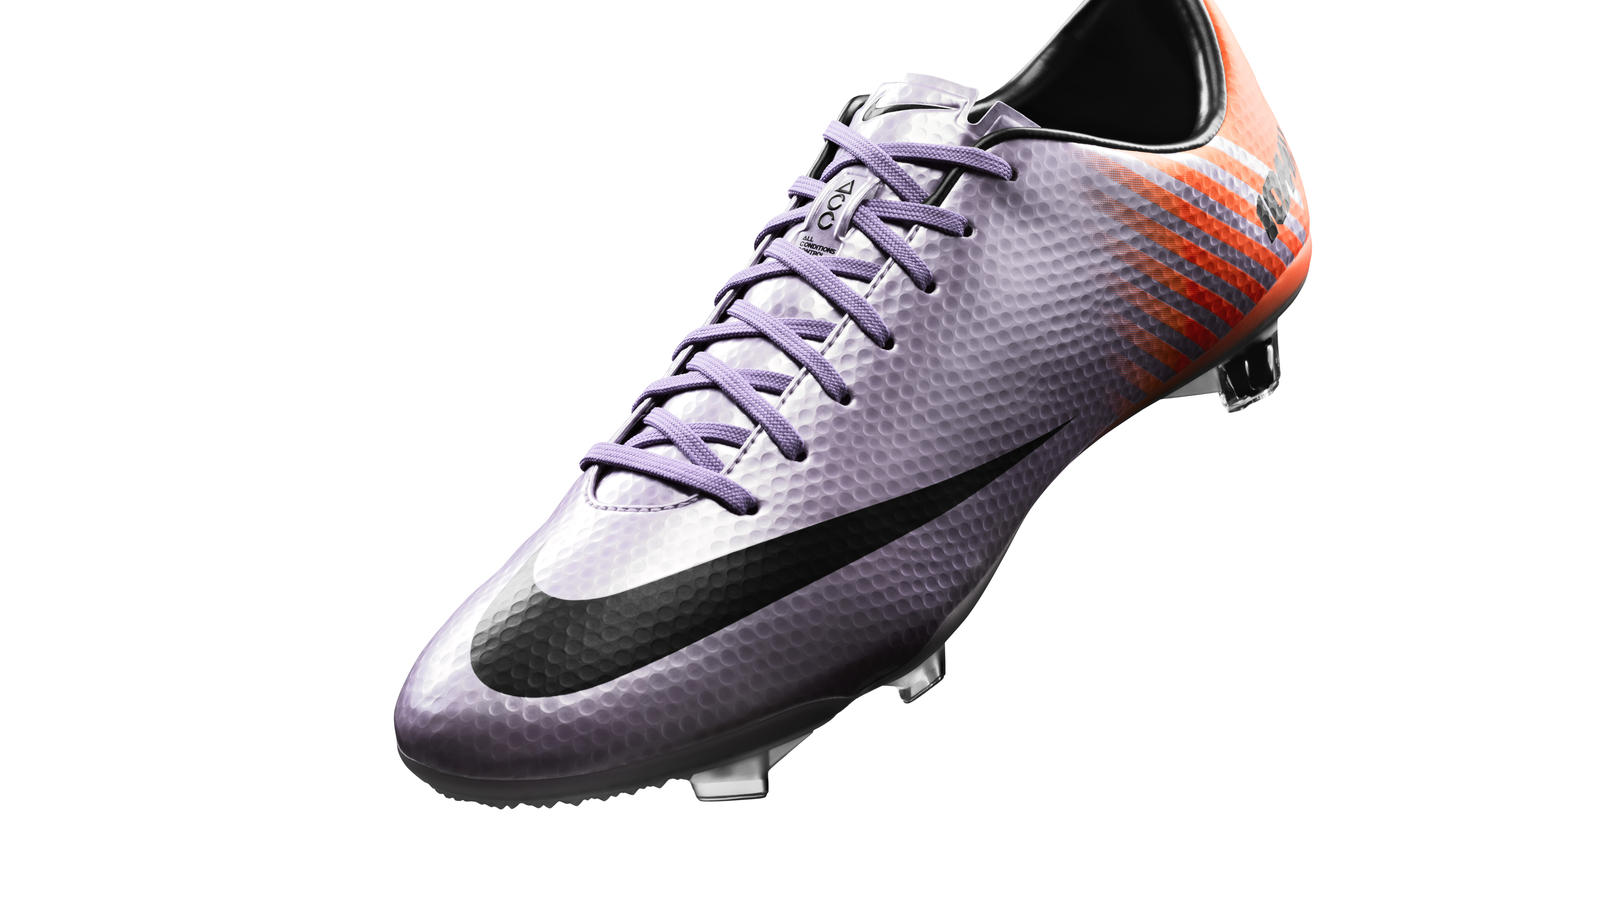 a85fb79a883b86 Celebrate Speed with Mercurial Fast Forward 2010 Edition - Nike News